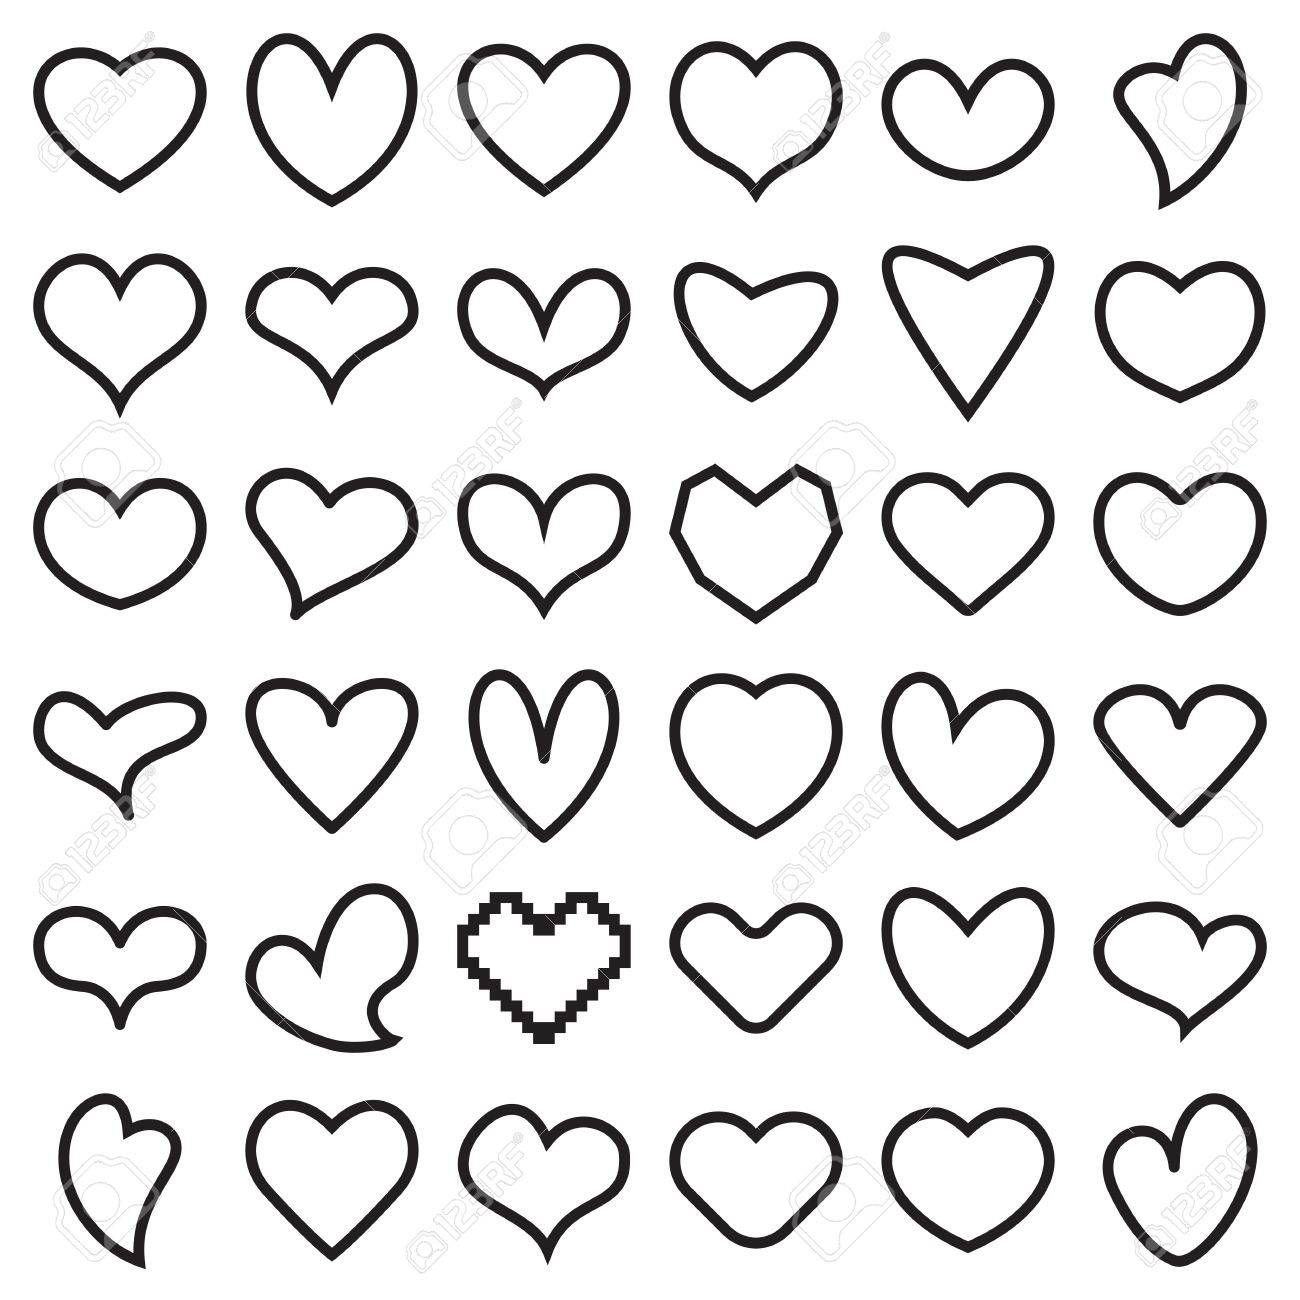 Linear Heart Symbol Icons Vector Illustration Royalty Free Cliparts